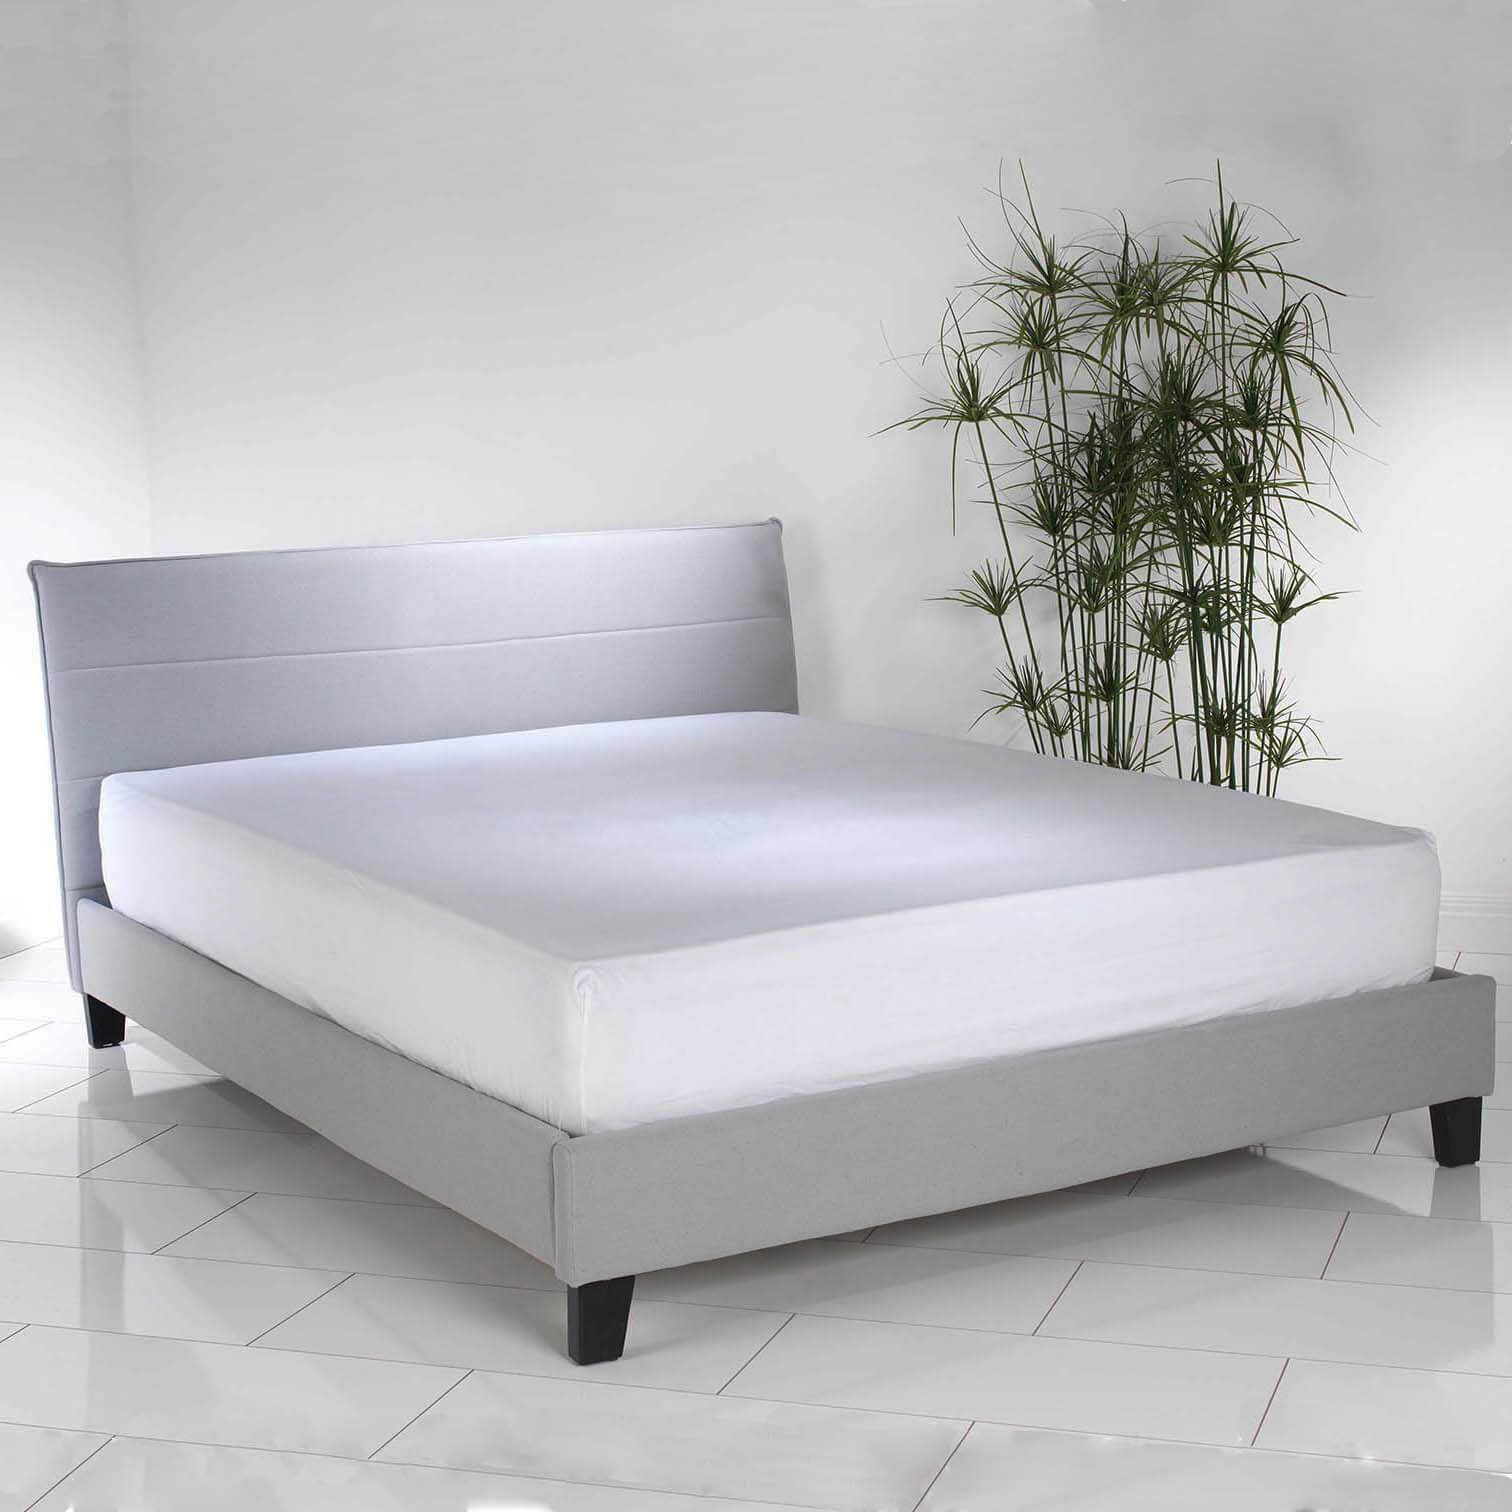 Double Blue Linen Upholstered Modern Bed